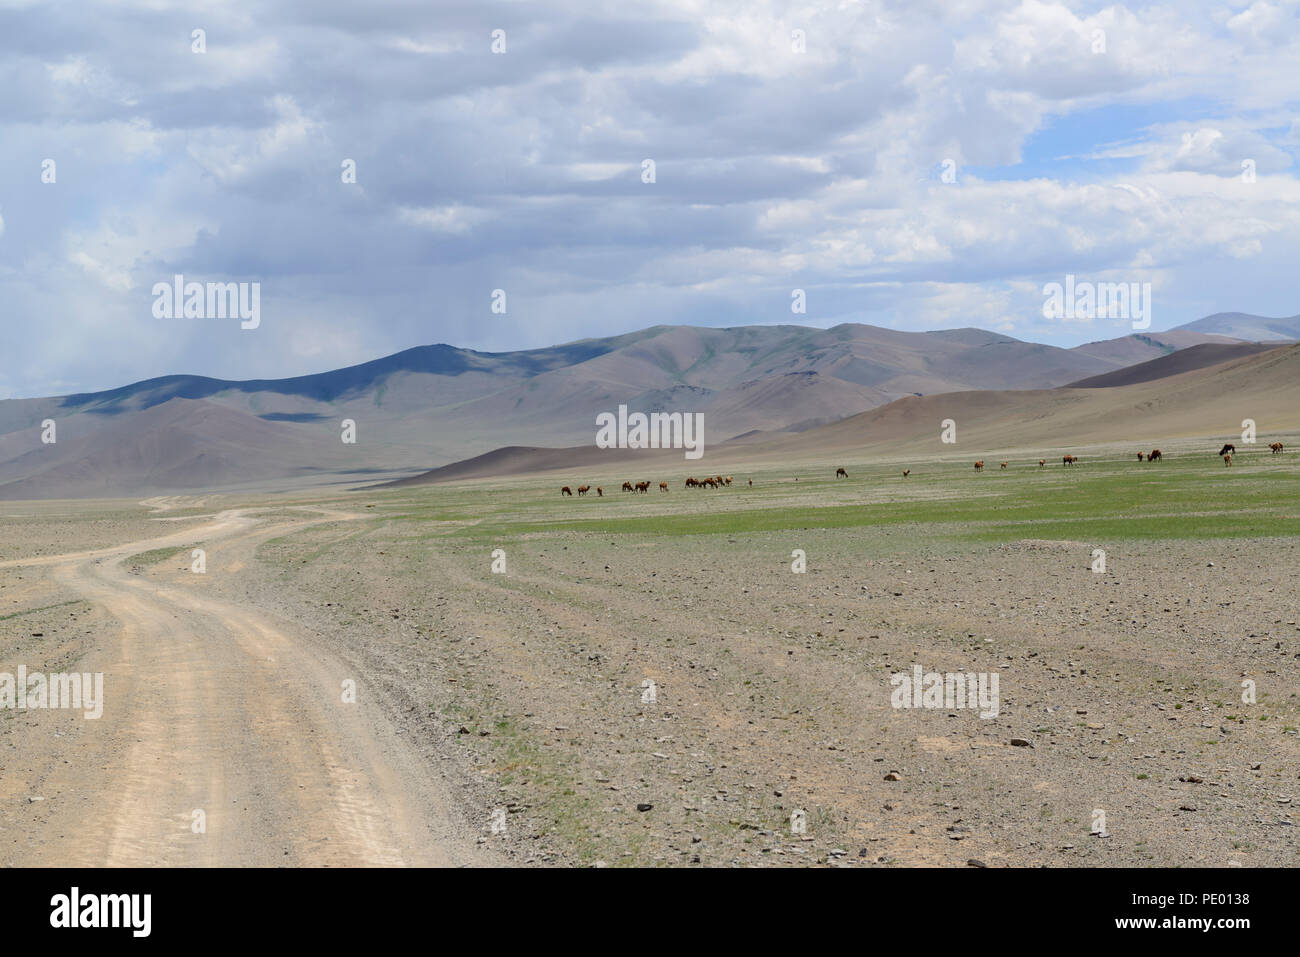 Camels in the distance on the steppe of Mongolia - Stock Image